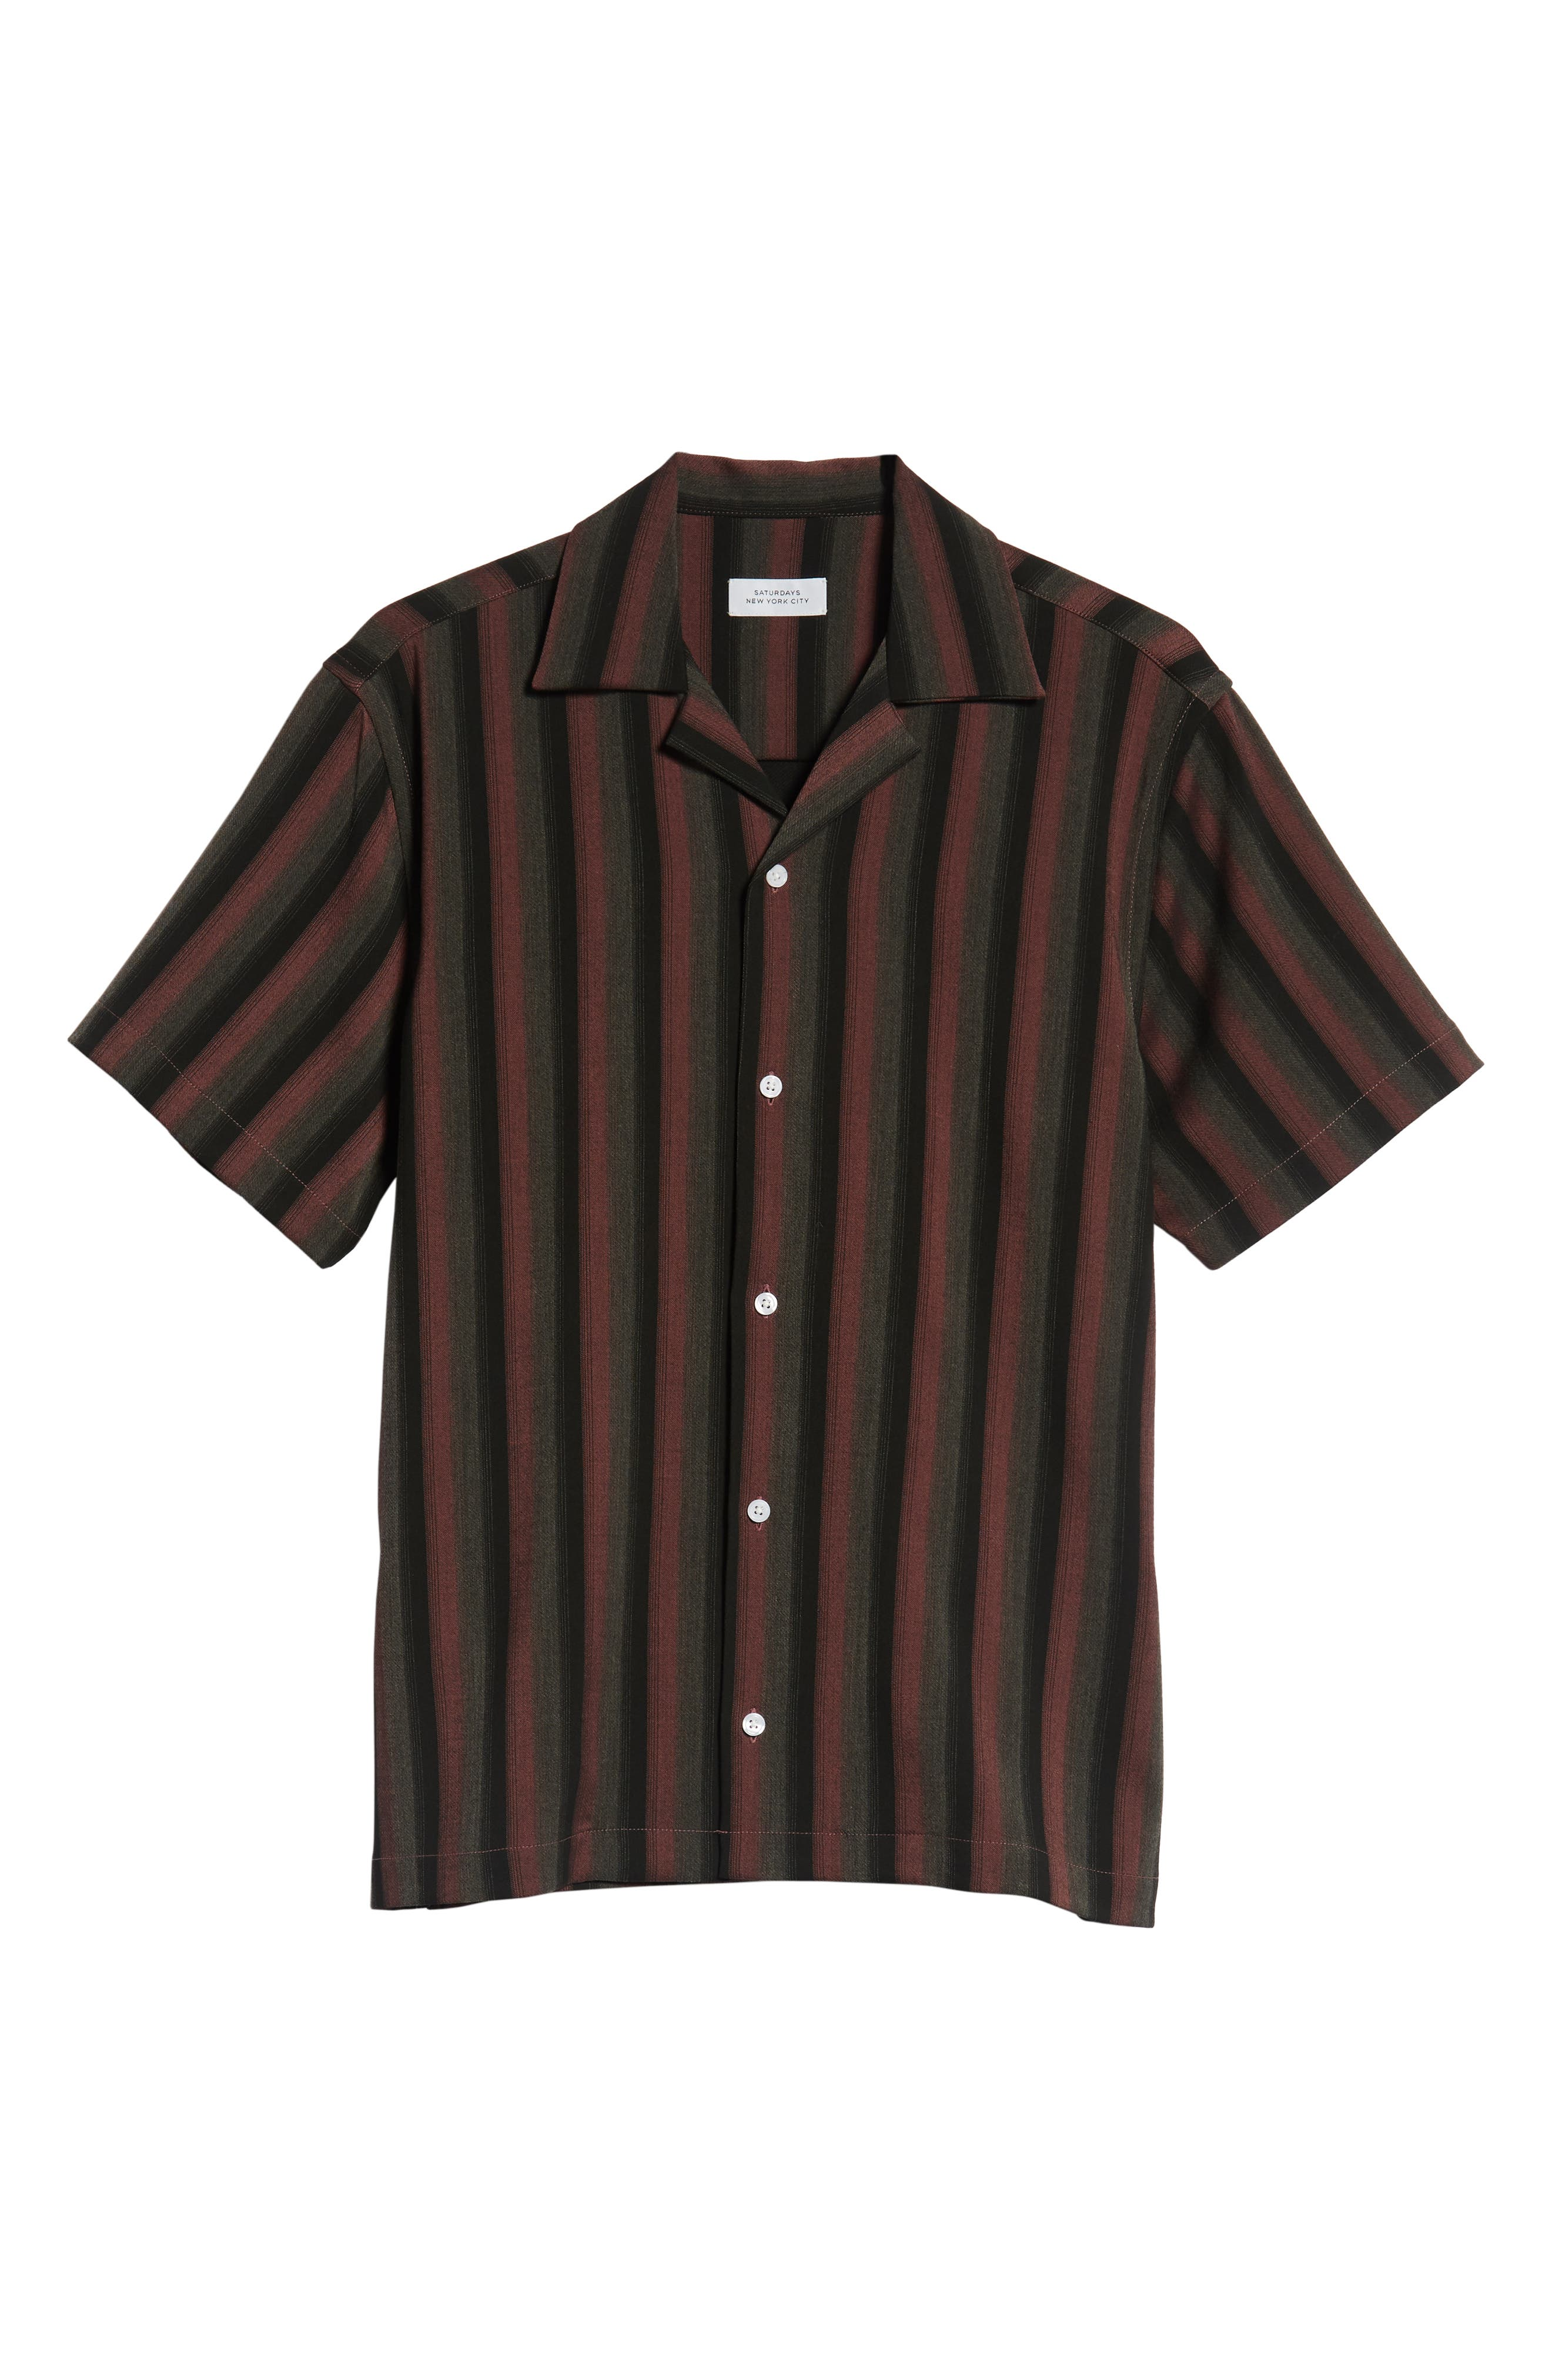 Canty Frequency Camp Shirt,                             Alternate thumbnail 5, color,                             650